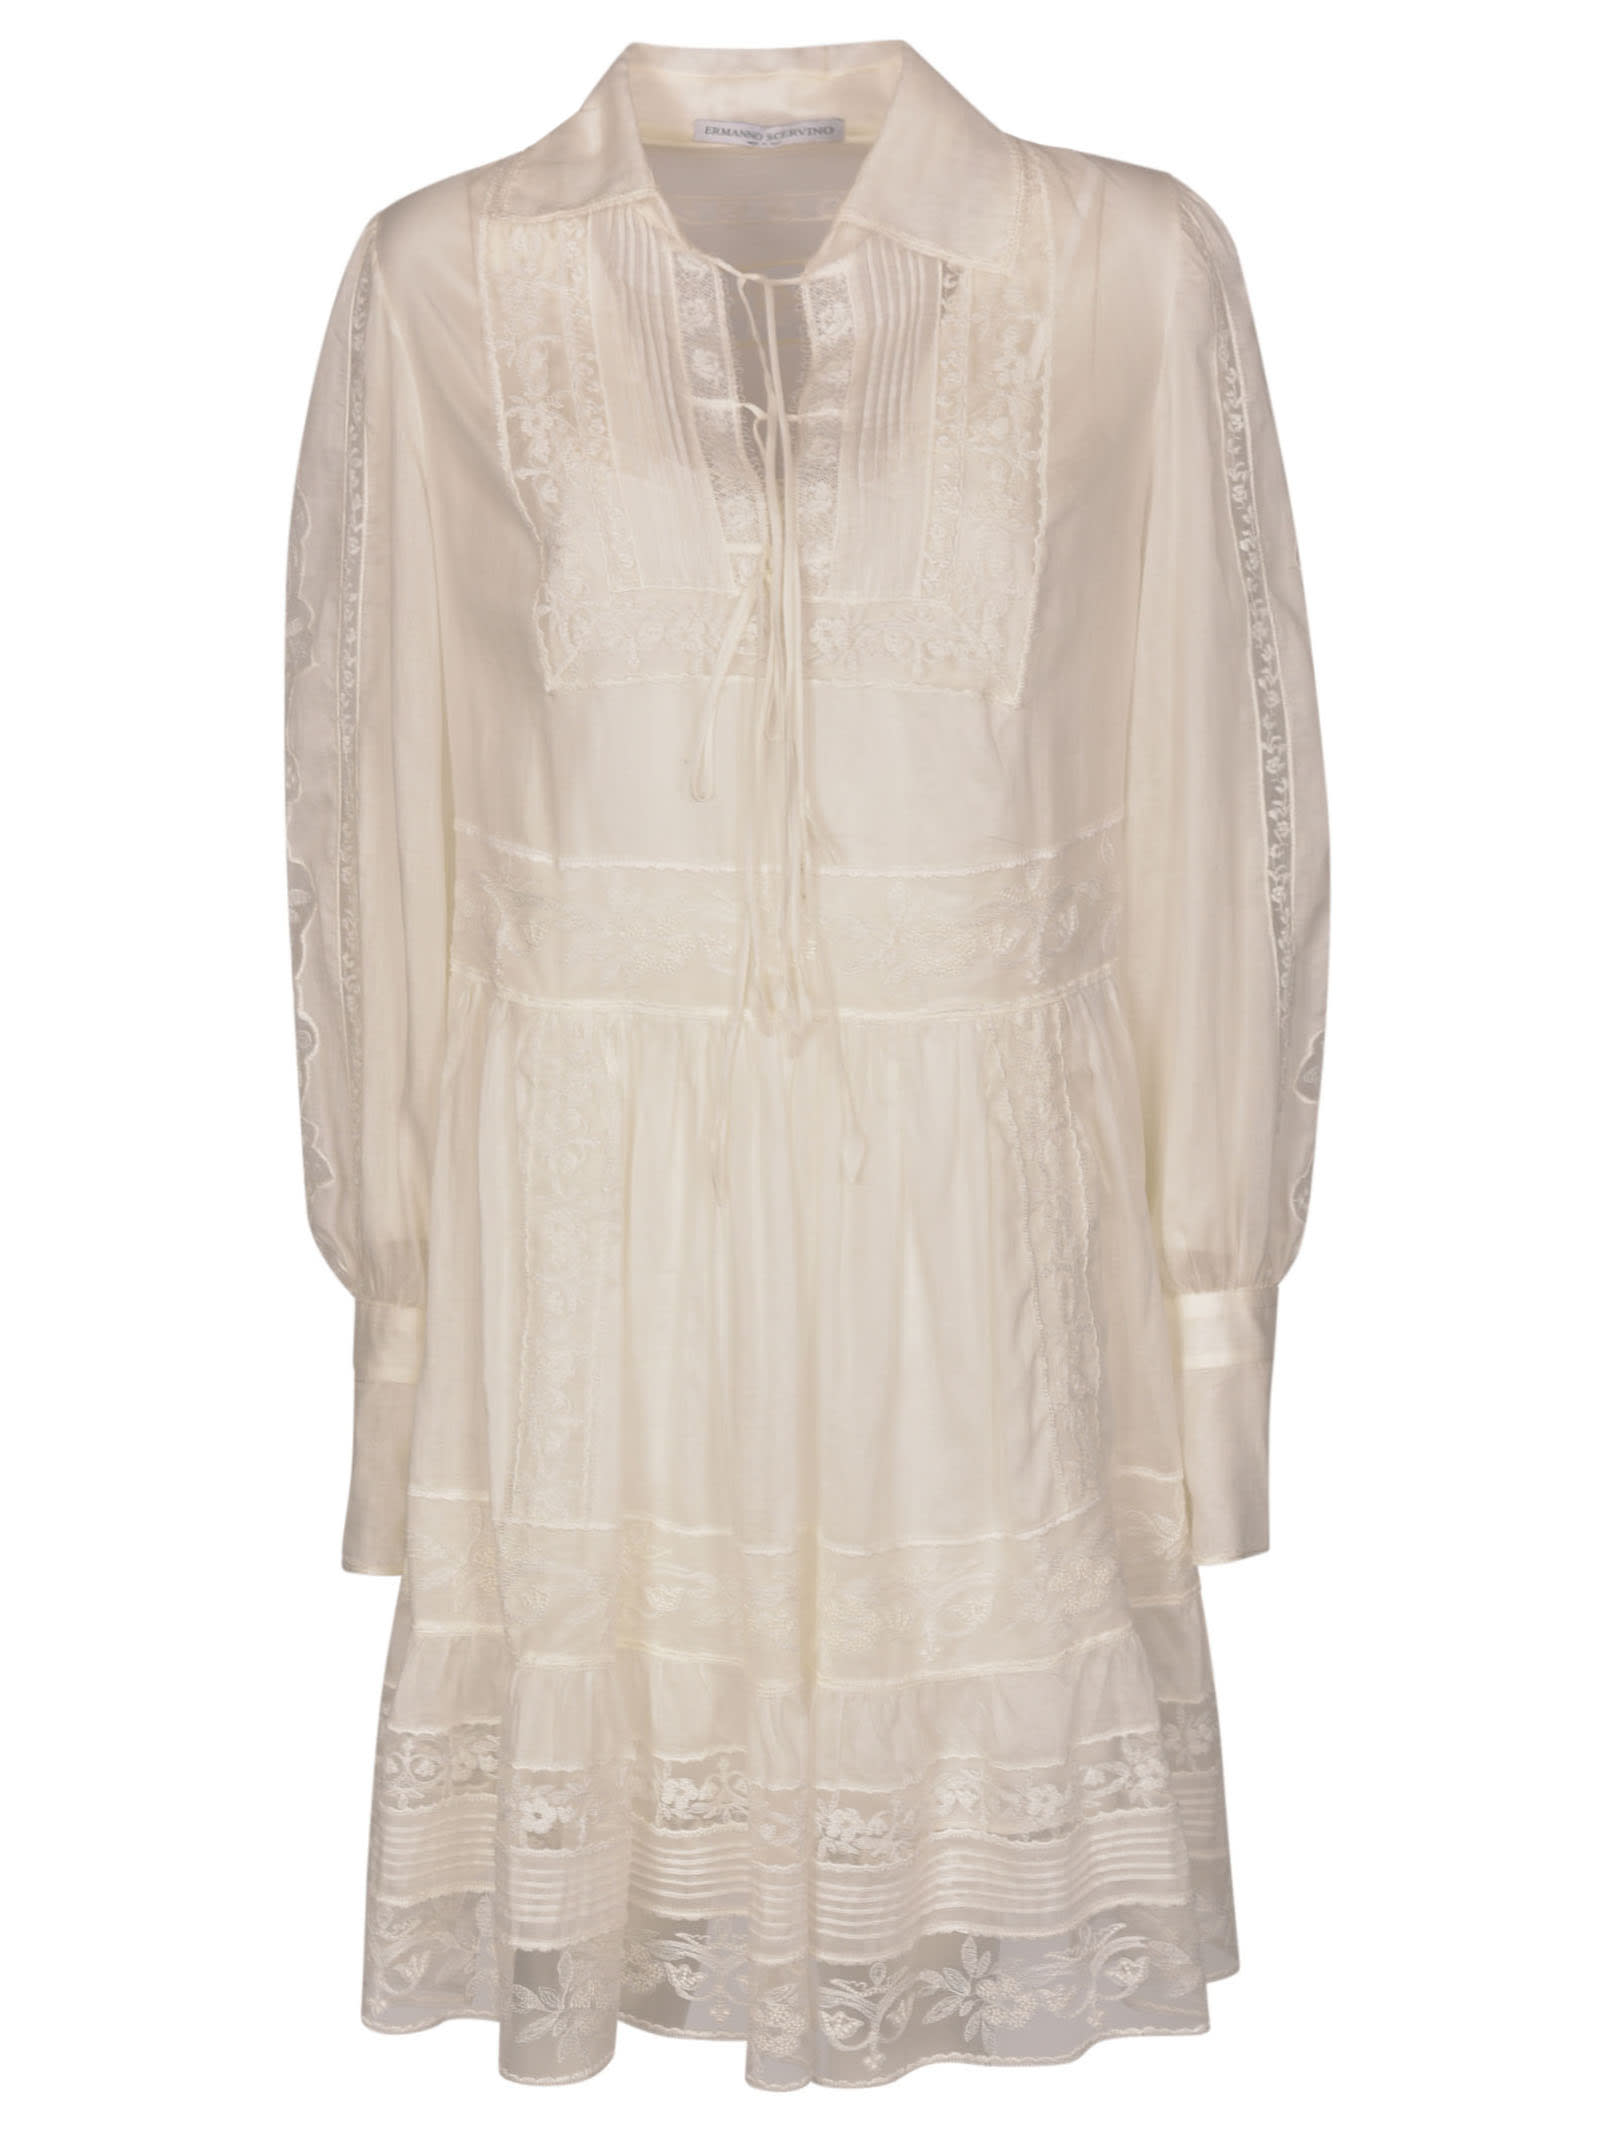 Buy Ermanno Scervino Lace Paneled Dress online, shop Ermanno Scervino with free shipping